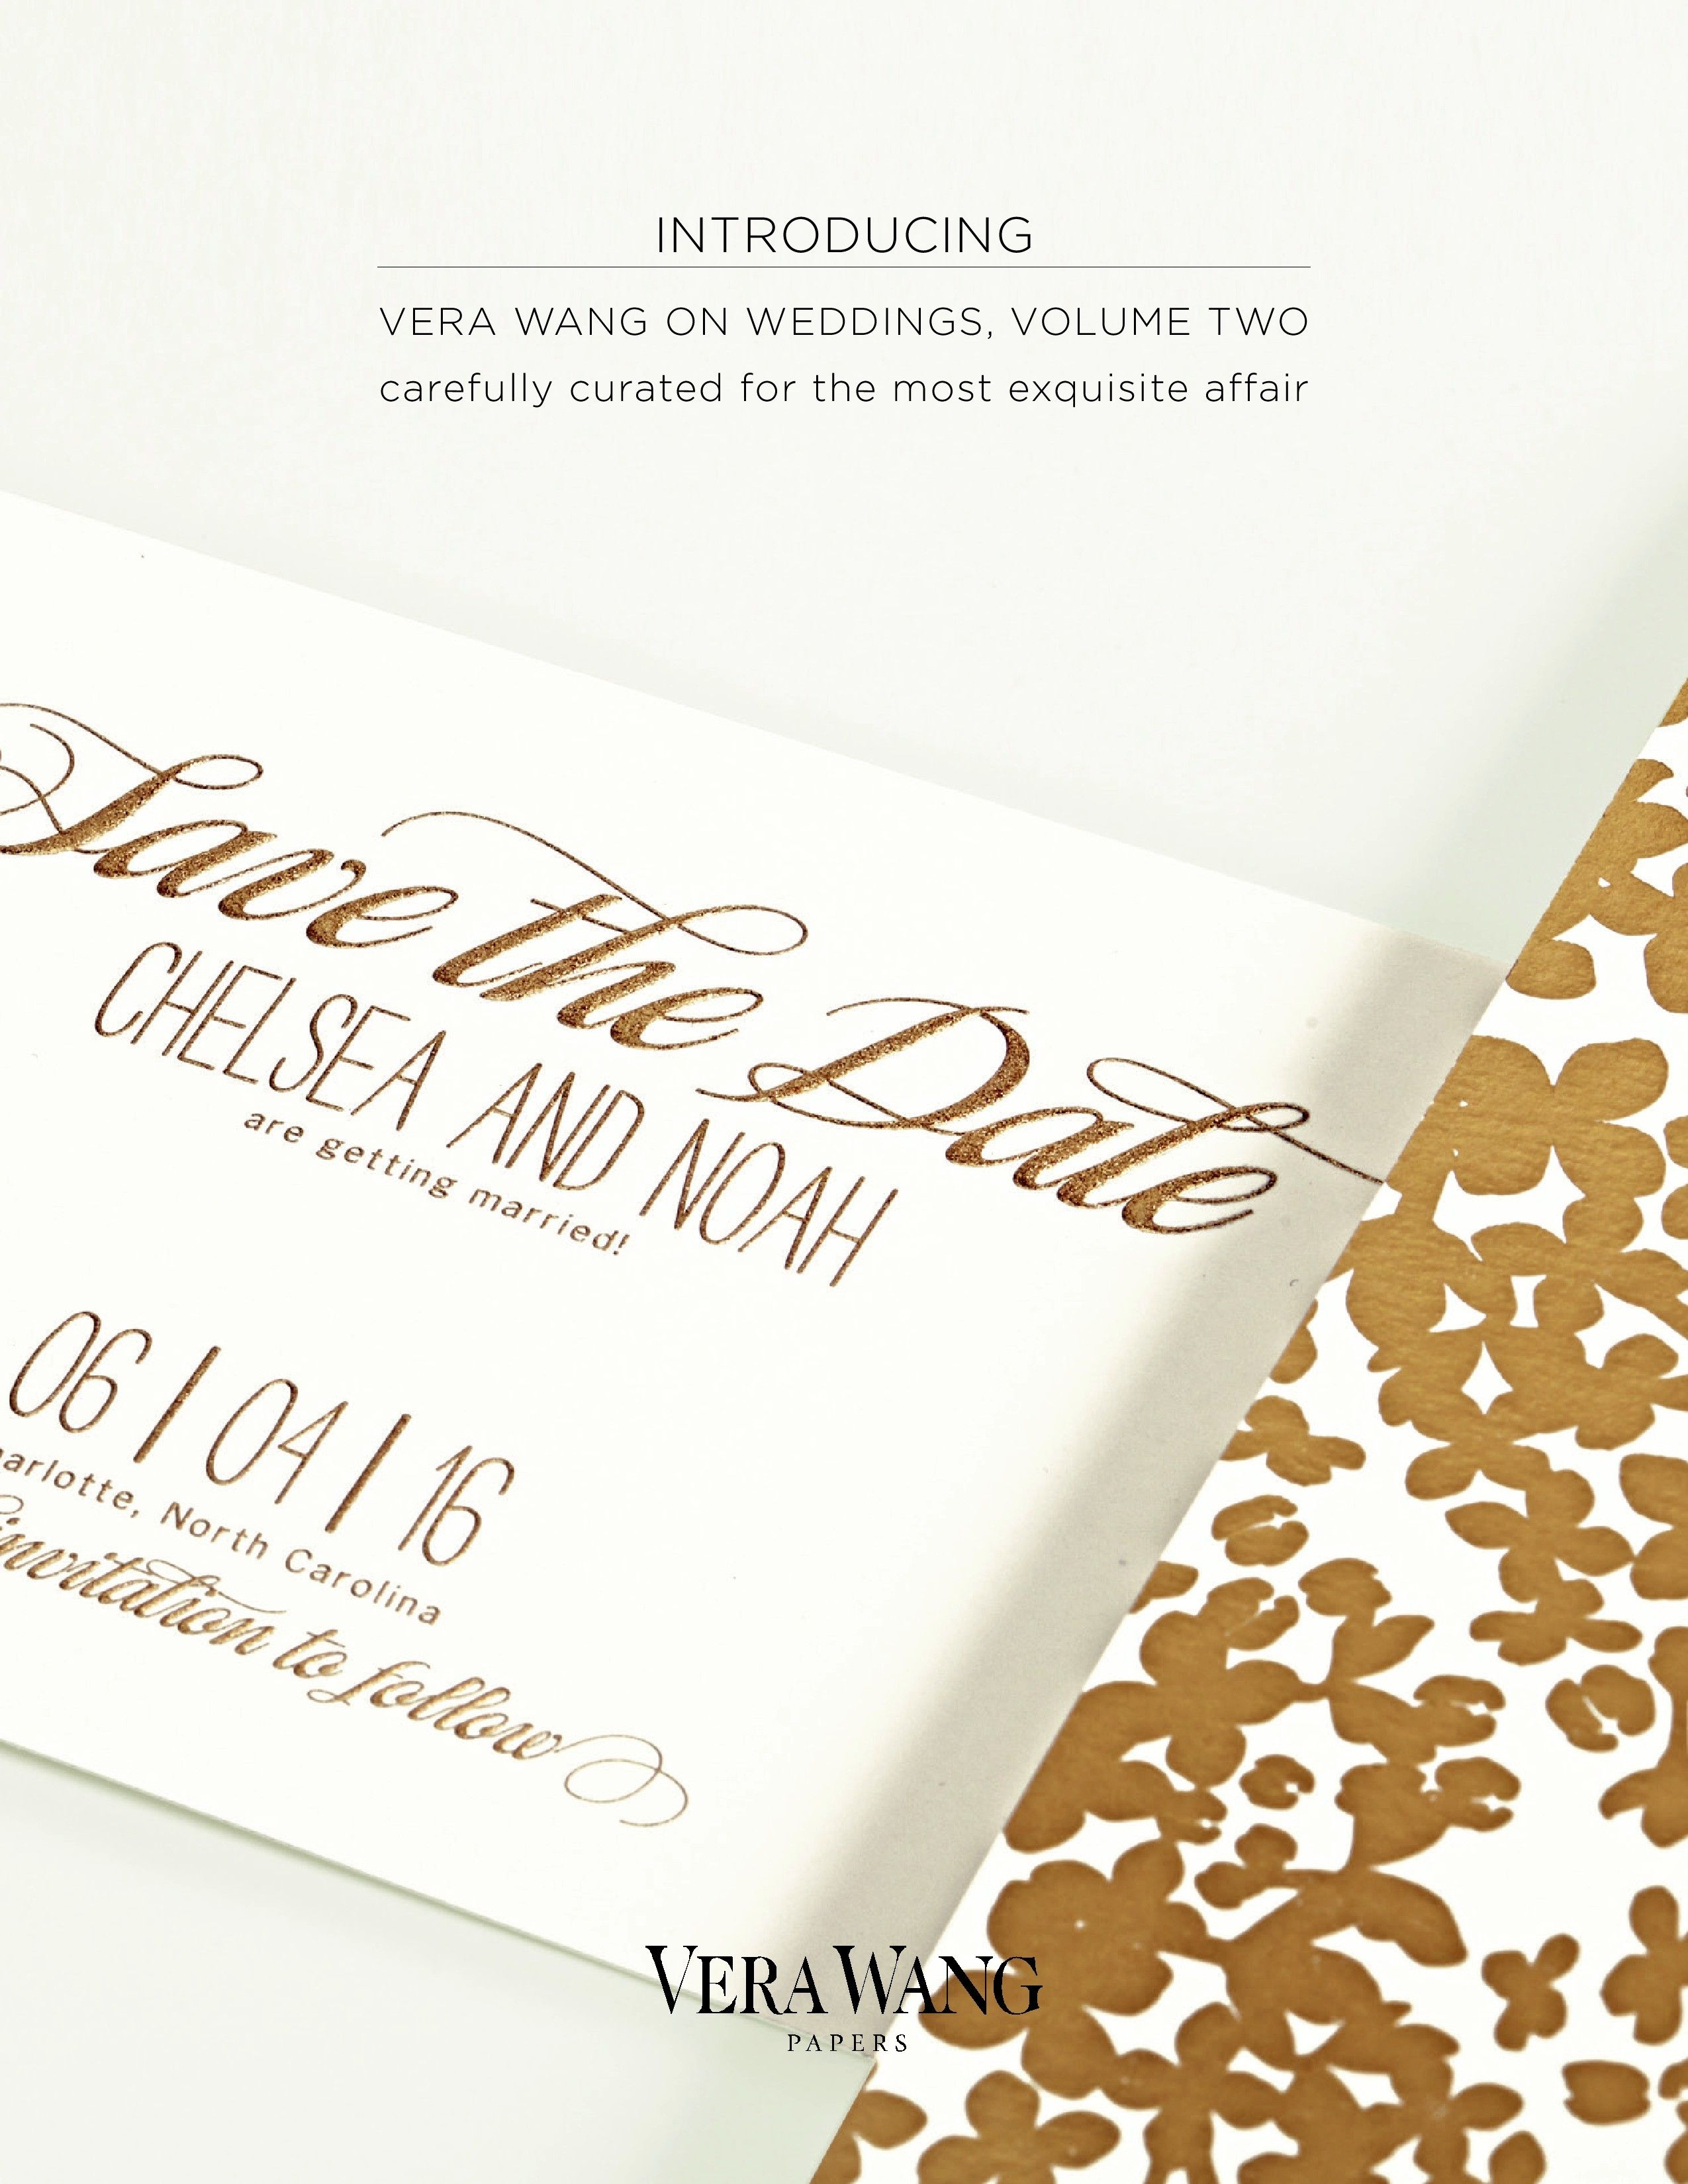 #Vera #Wang #Papers on #Weddings #Volume #Two #Gold #Confetti www.hyegraph.com/wedding-invitations